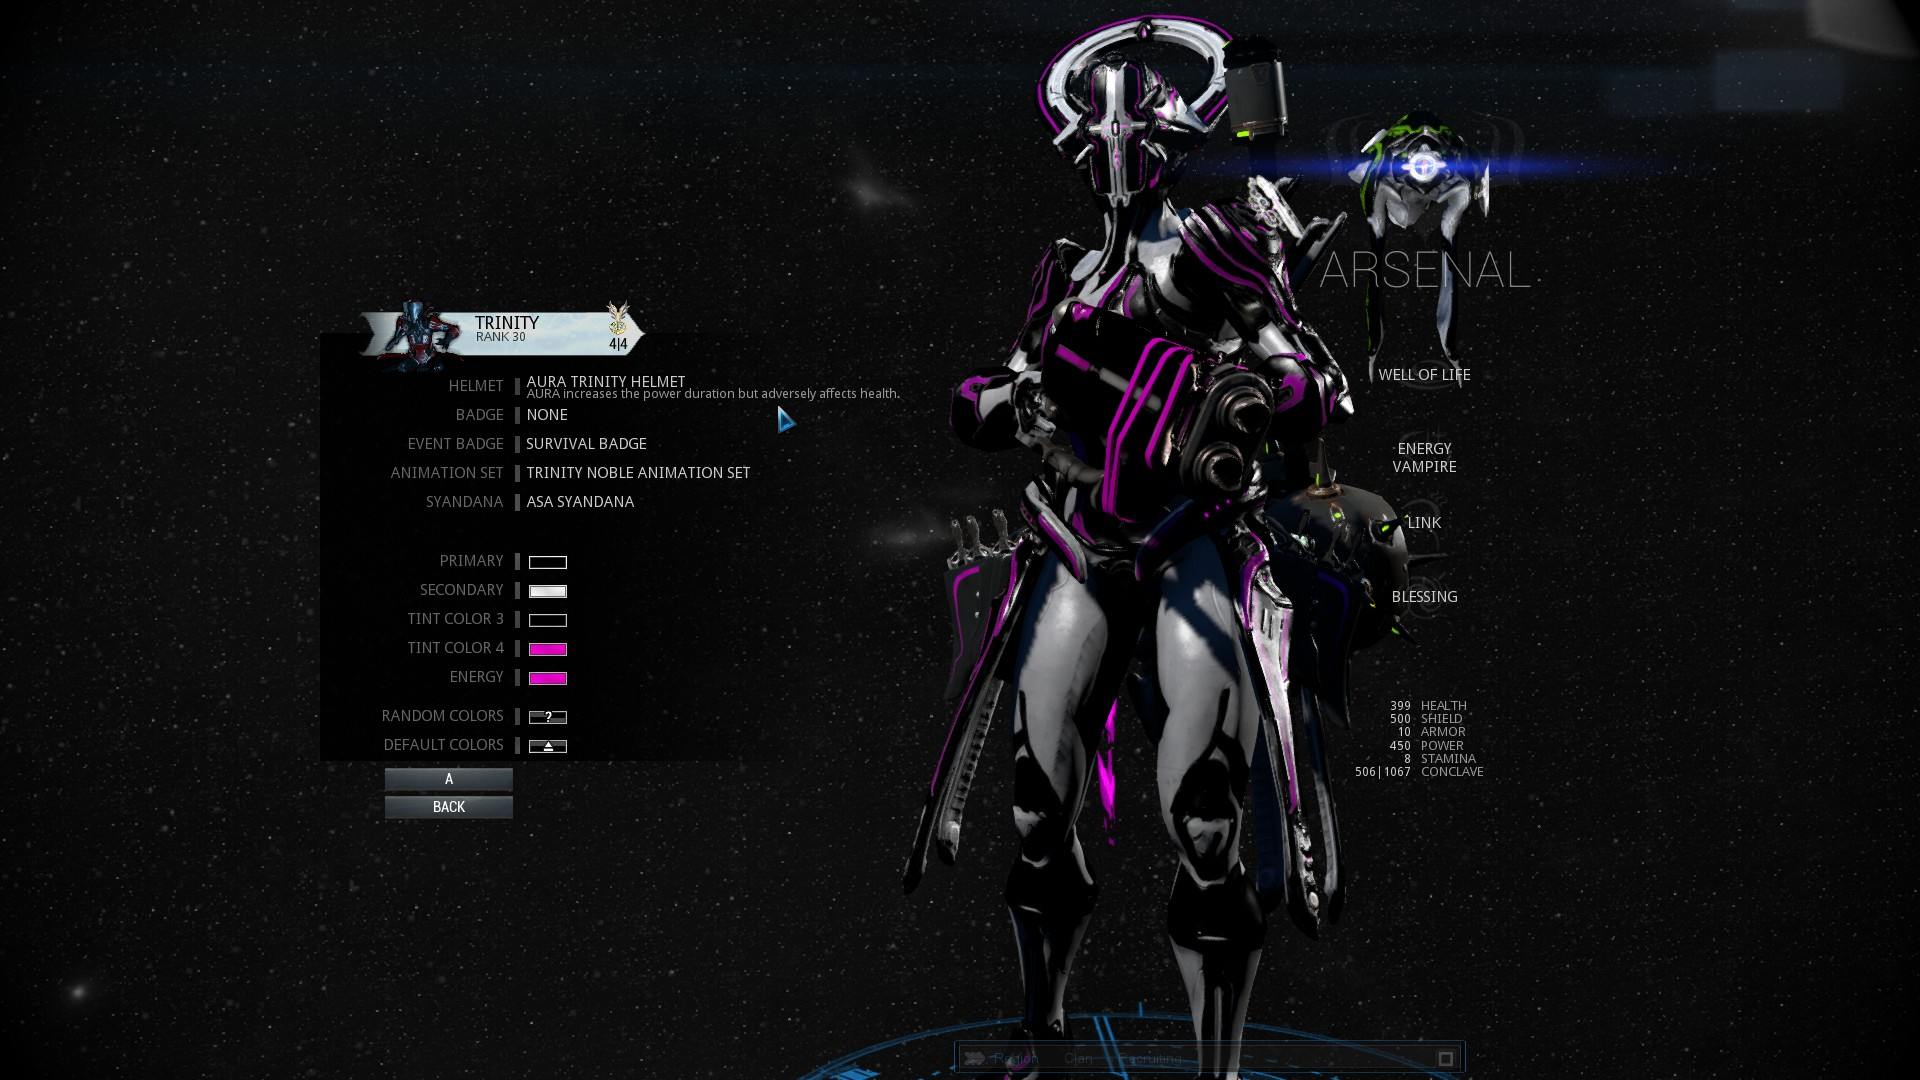 Warframe best weapons 2015 - With The Right Loadout Trinity Can Even Outdamage Other Frames